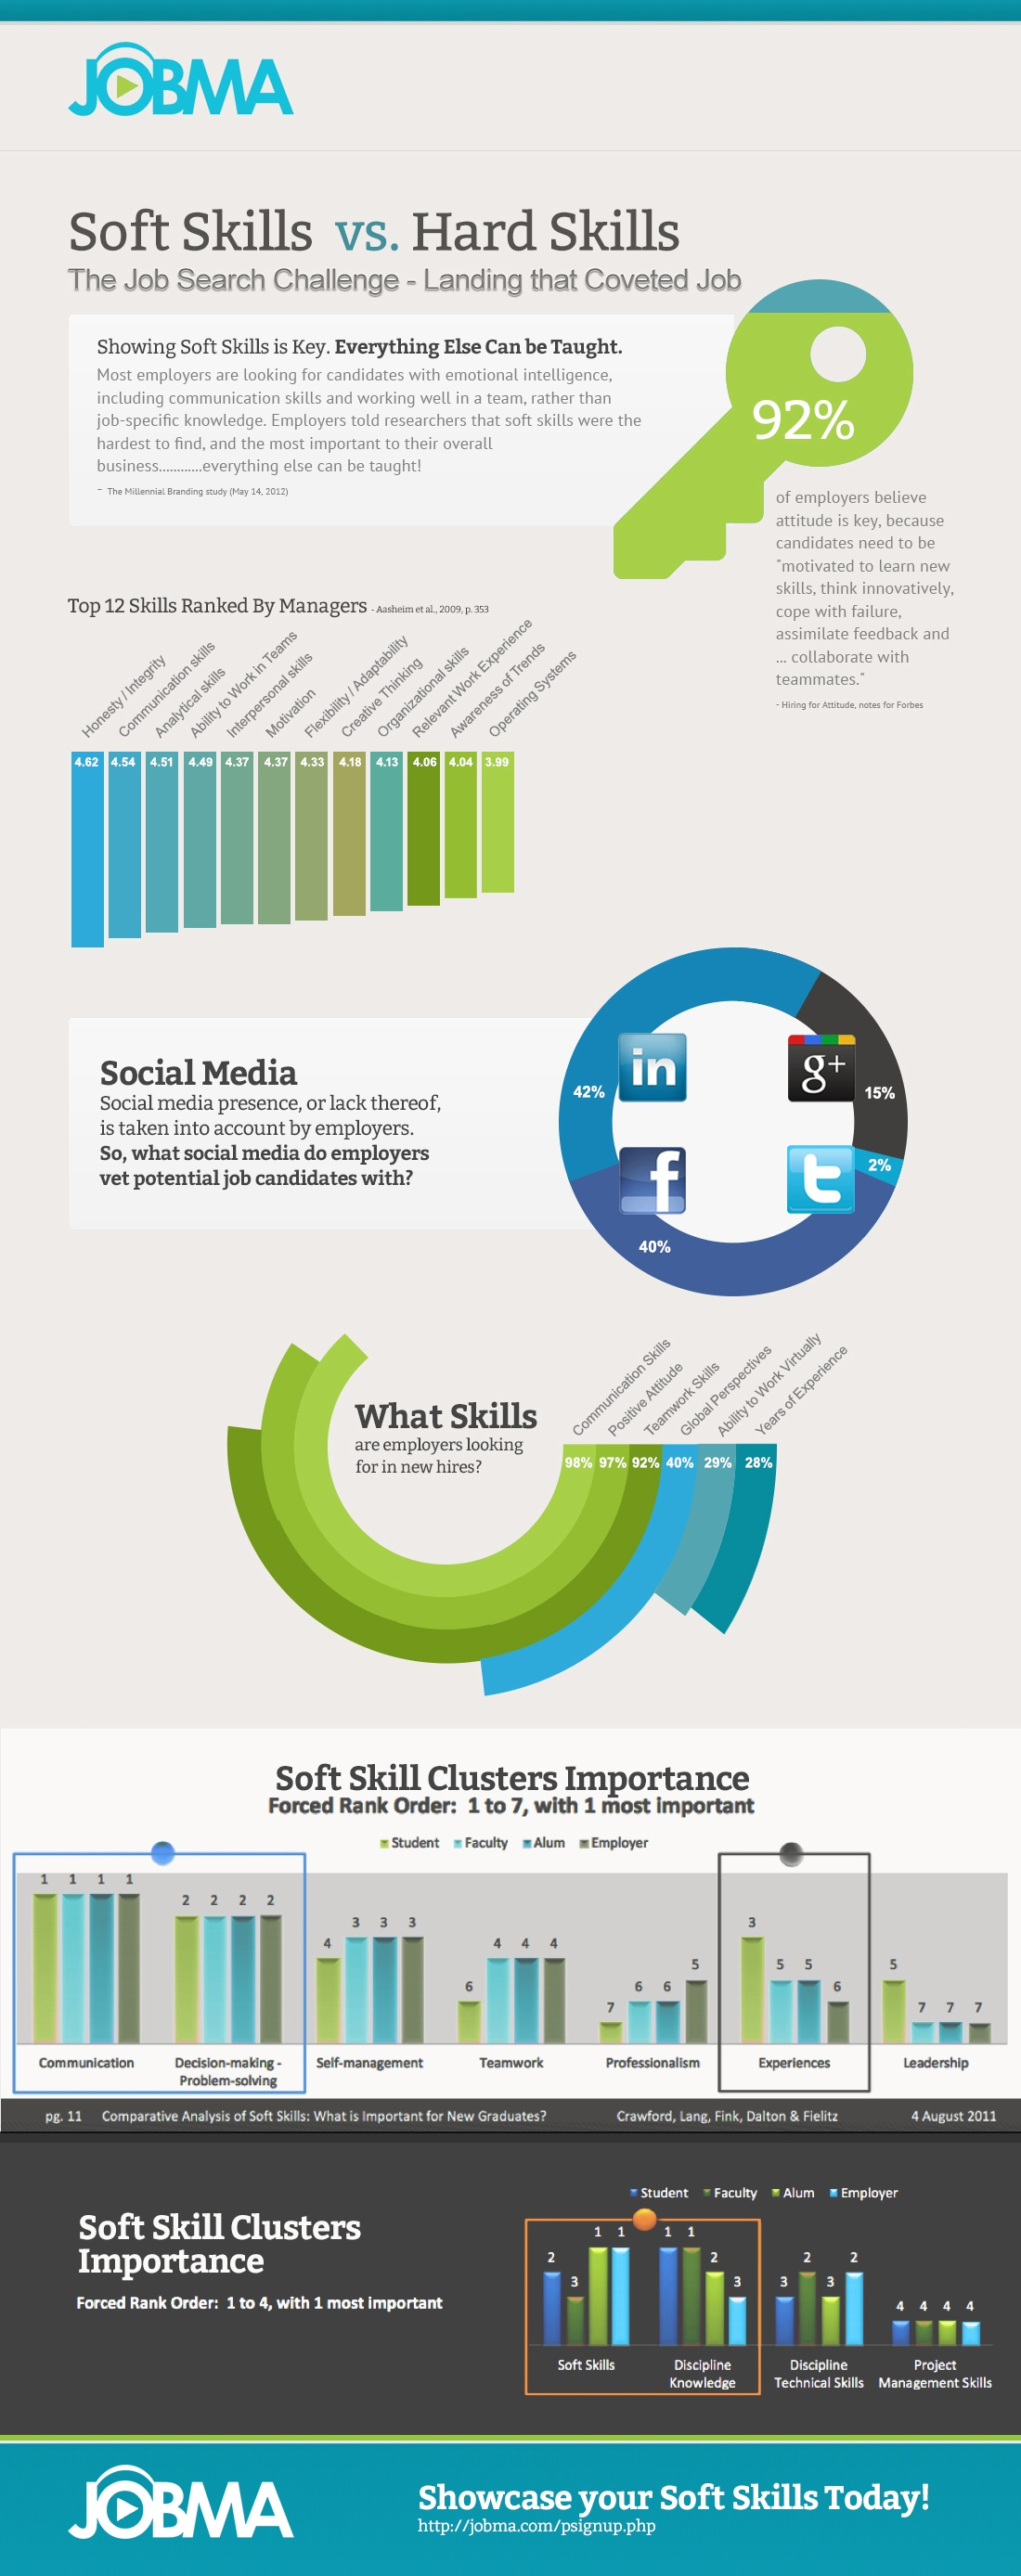 Boingle Images likewise Soft Skills Vs Hard Skills Infographic furthermore  also Urswick together with Pe rating Neck Injuries Hard Signs Soft Signs. on hard and soft skills